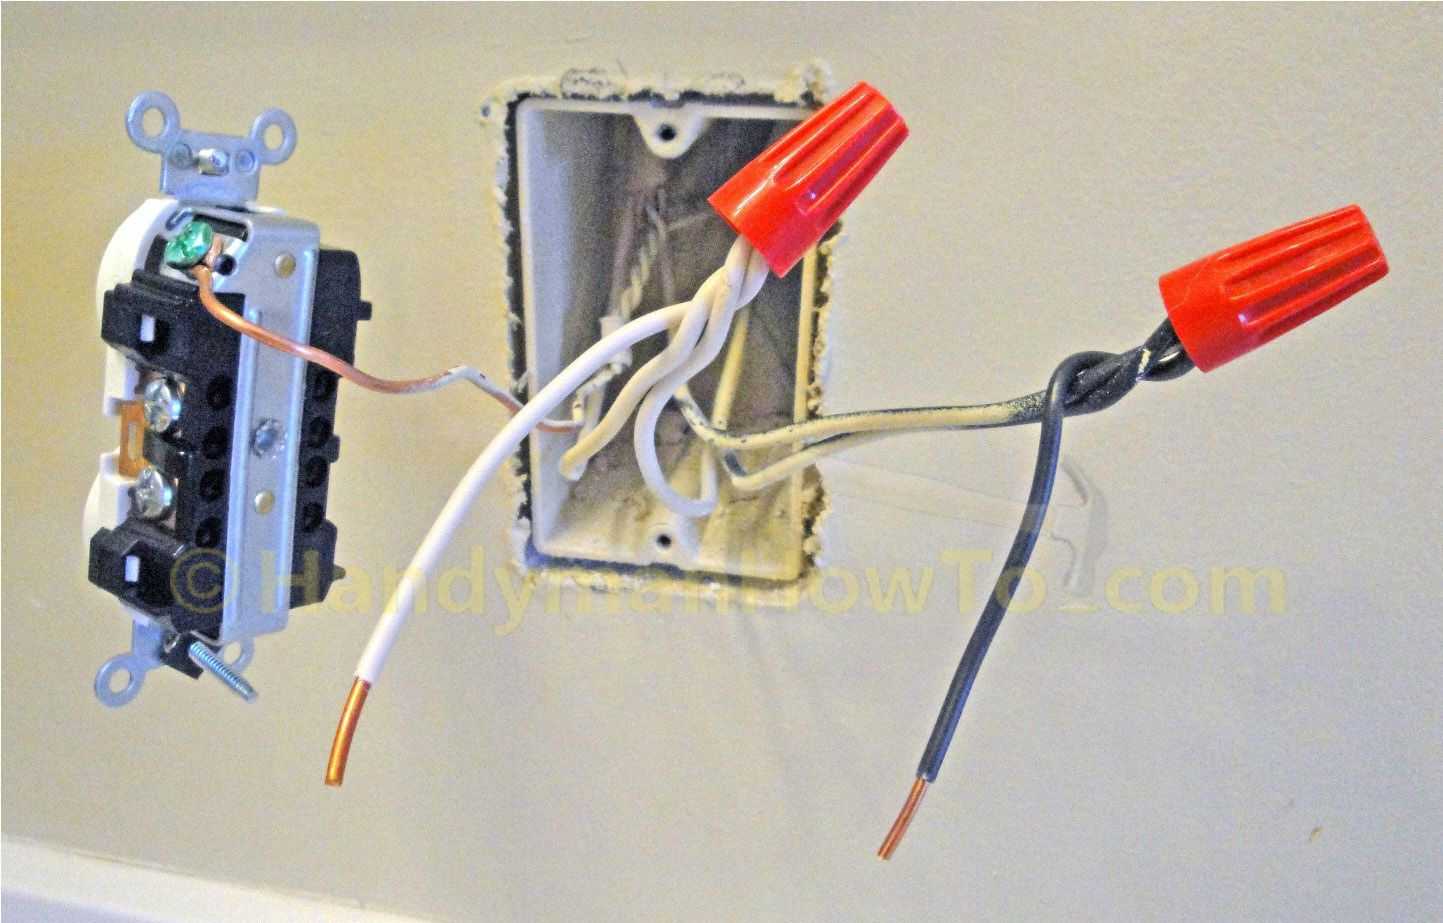 eb27a8c4cf82653085b1e6b3e2eb6f6a backwiring an electrical outlet in parallel with pigtail pigtail wiring at gsmx.co